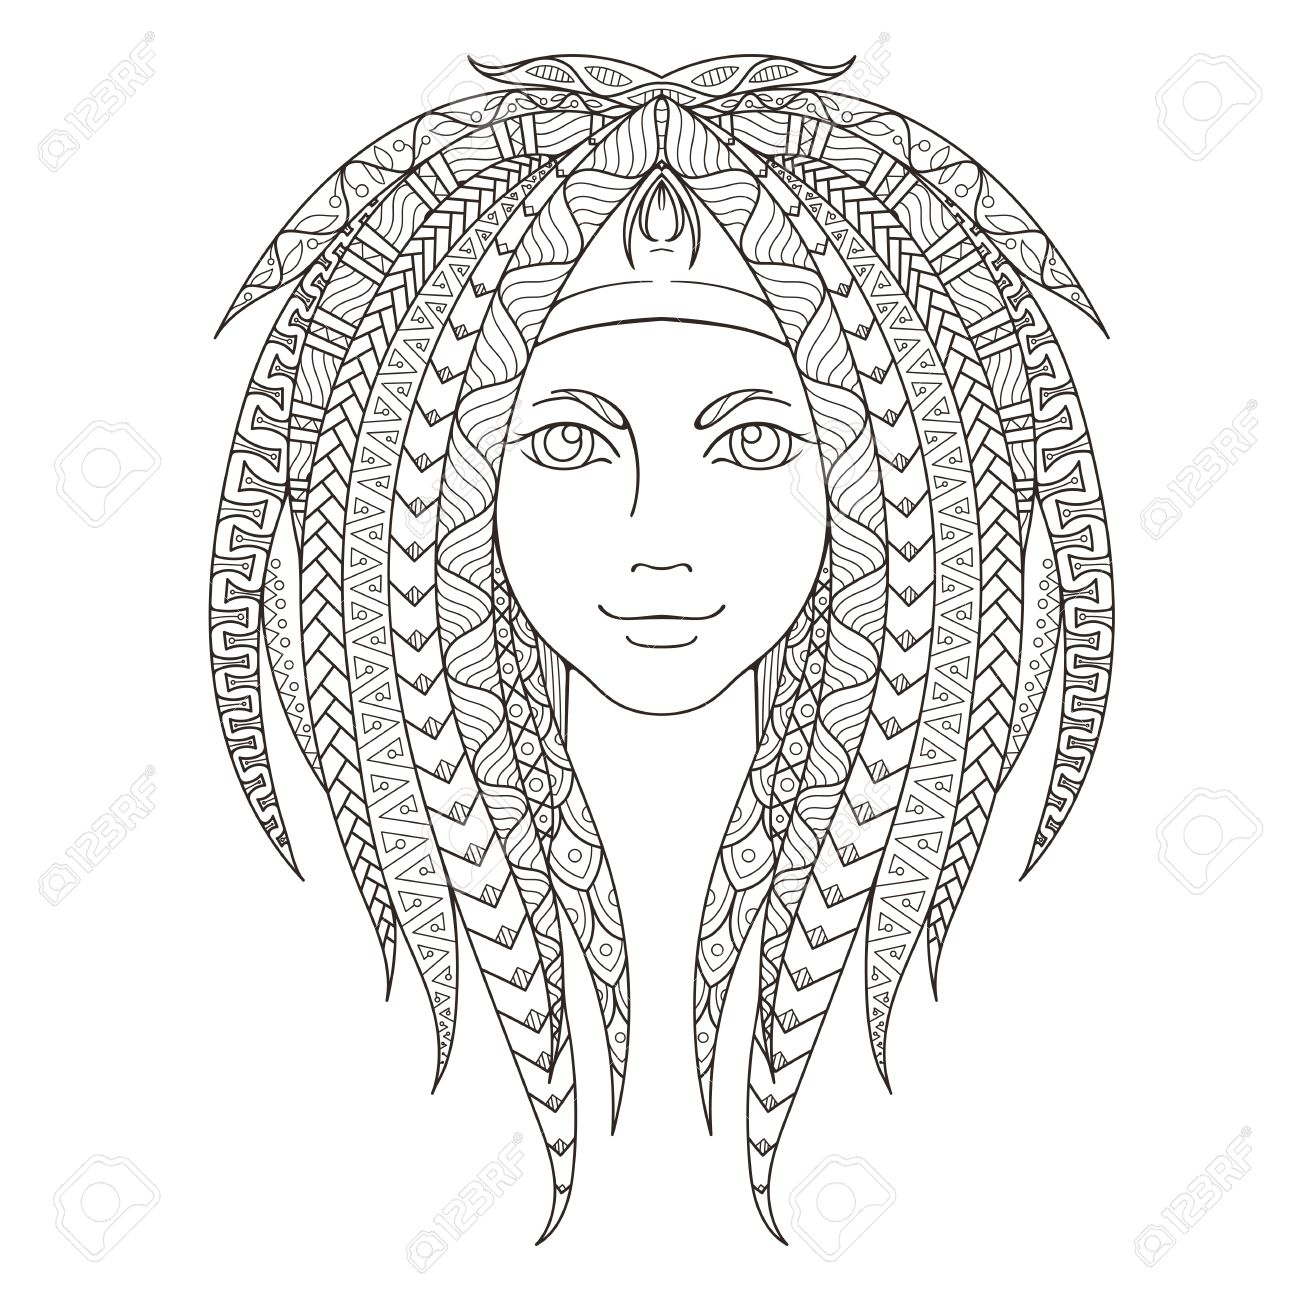 1300x1300 Young Girl With Patterned Dreadlocks. Page For Coloring. Ornate